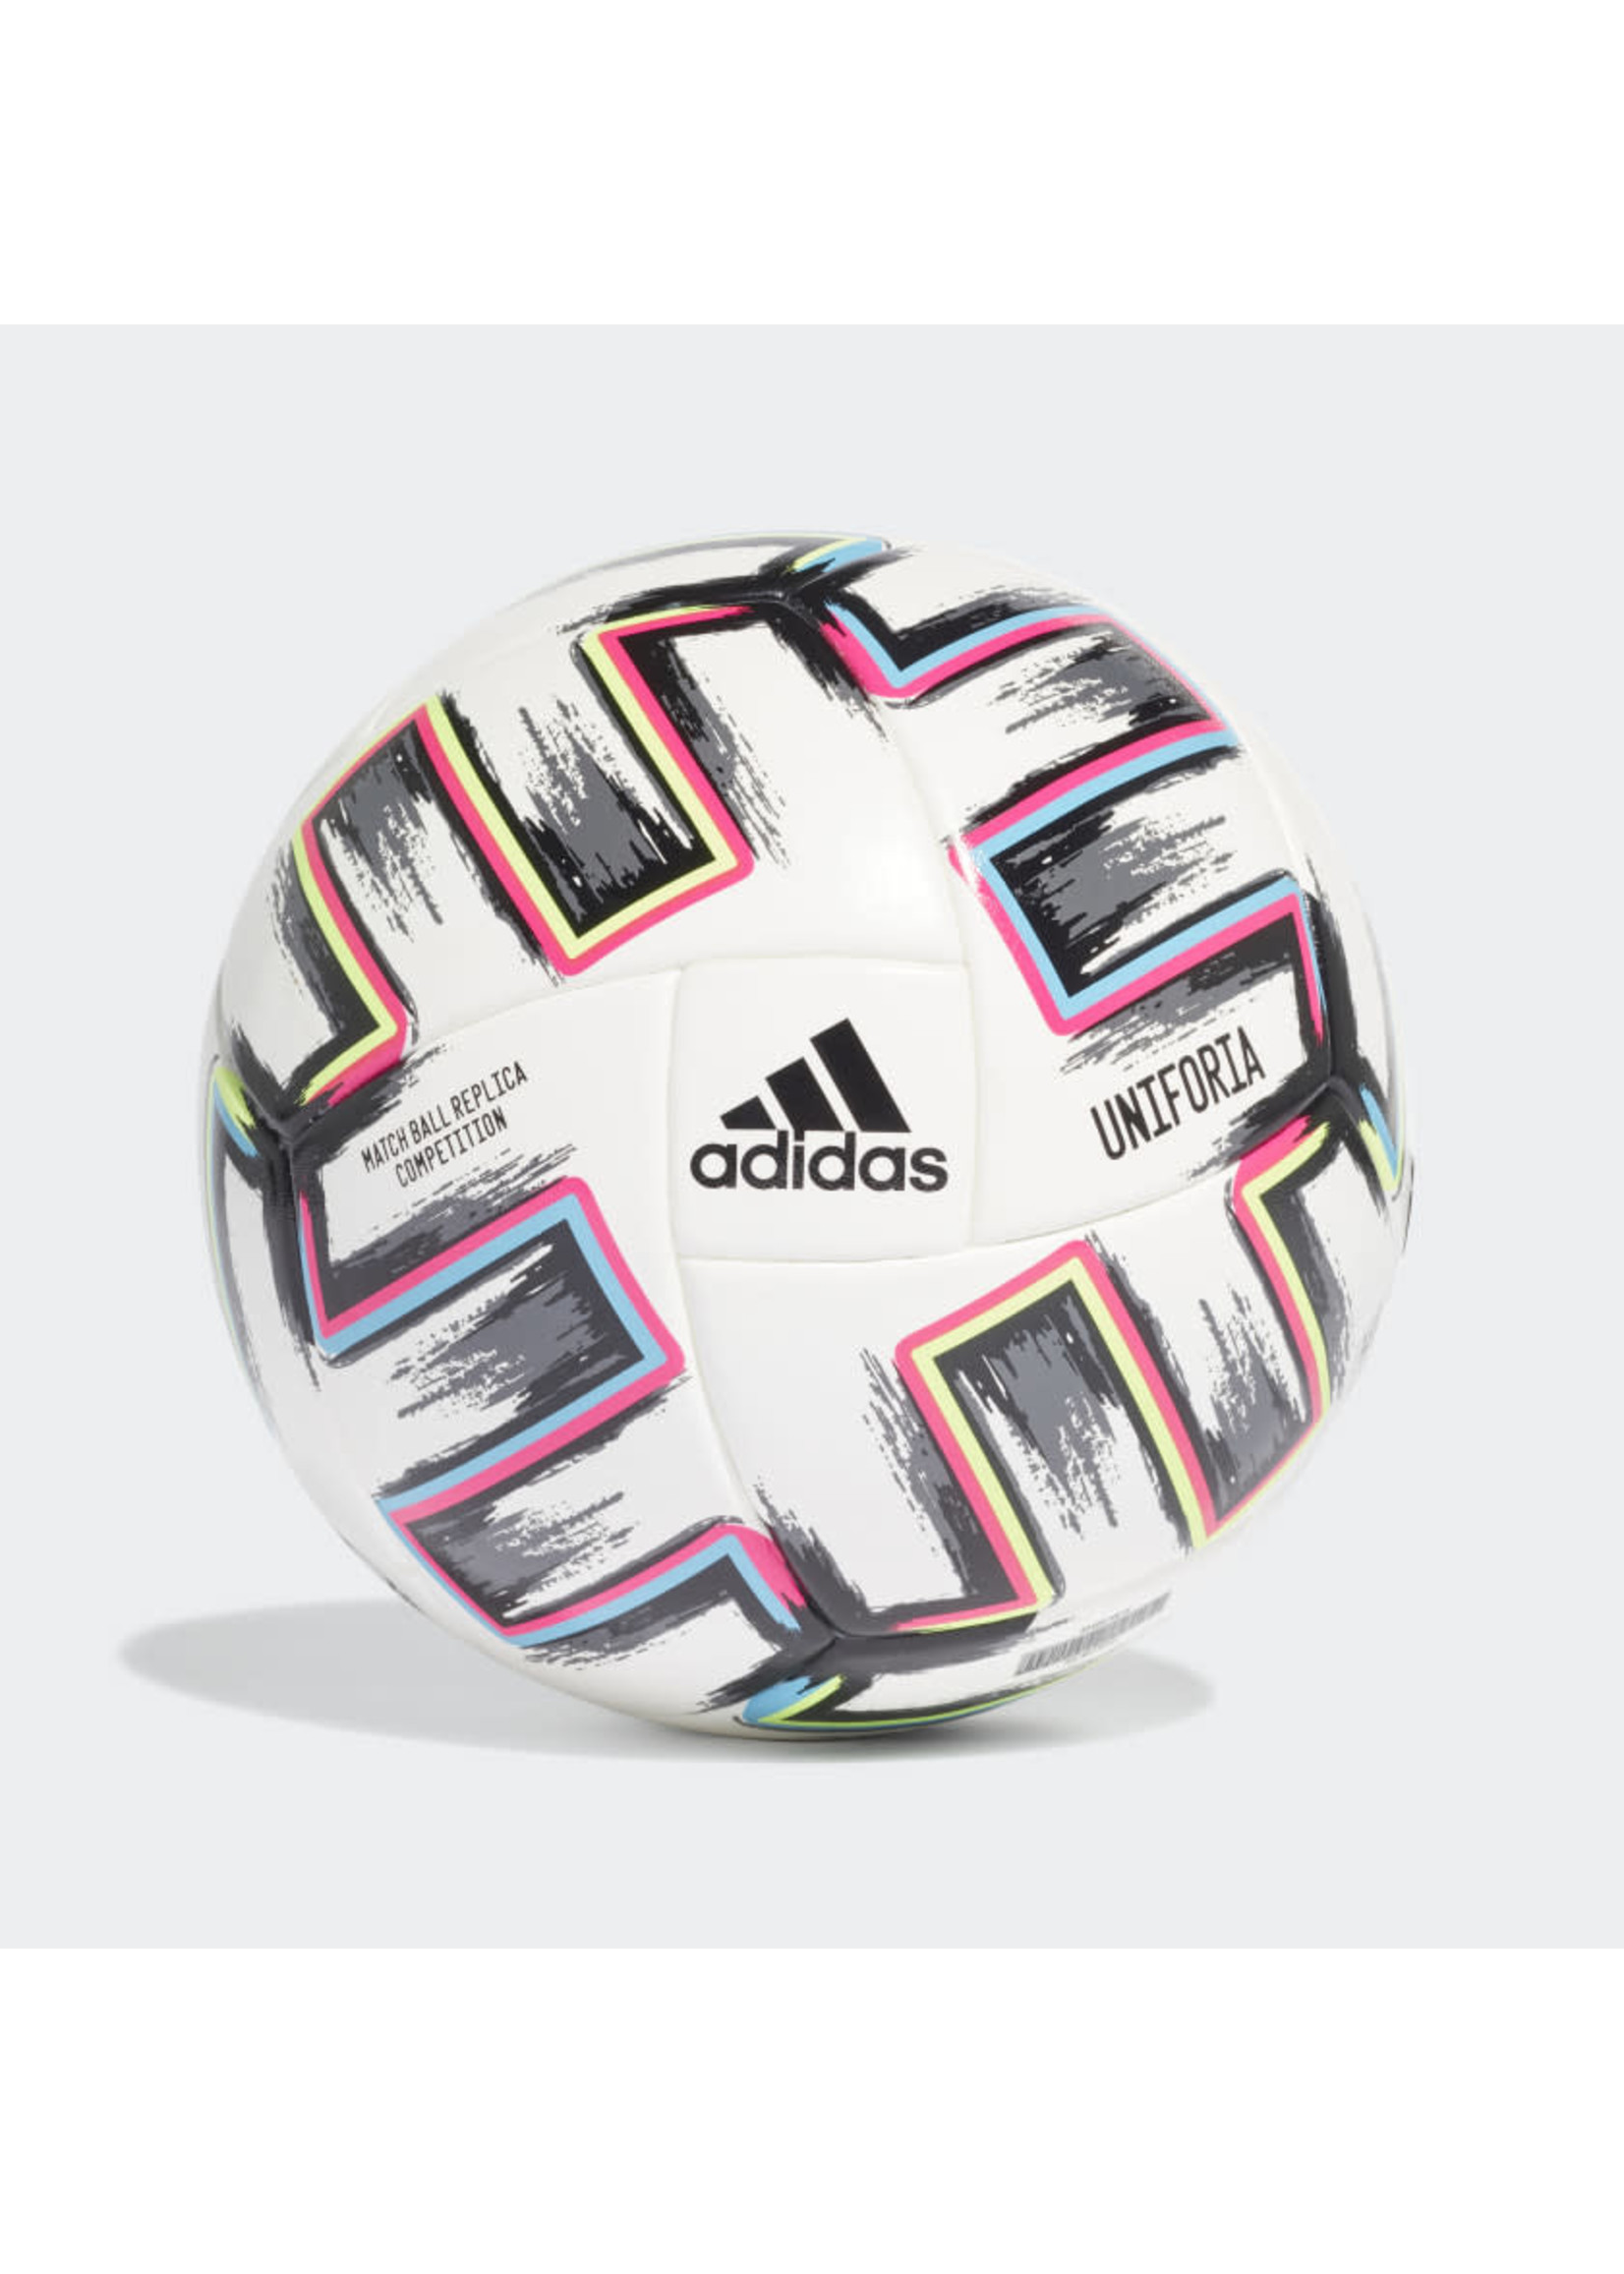 Adidas UNIFORIA COMPETITION BALL